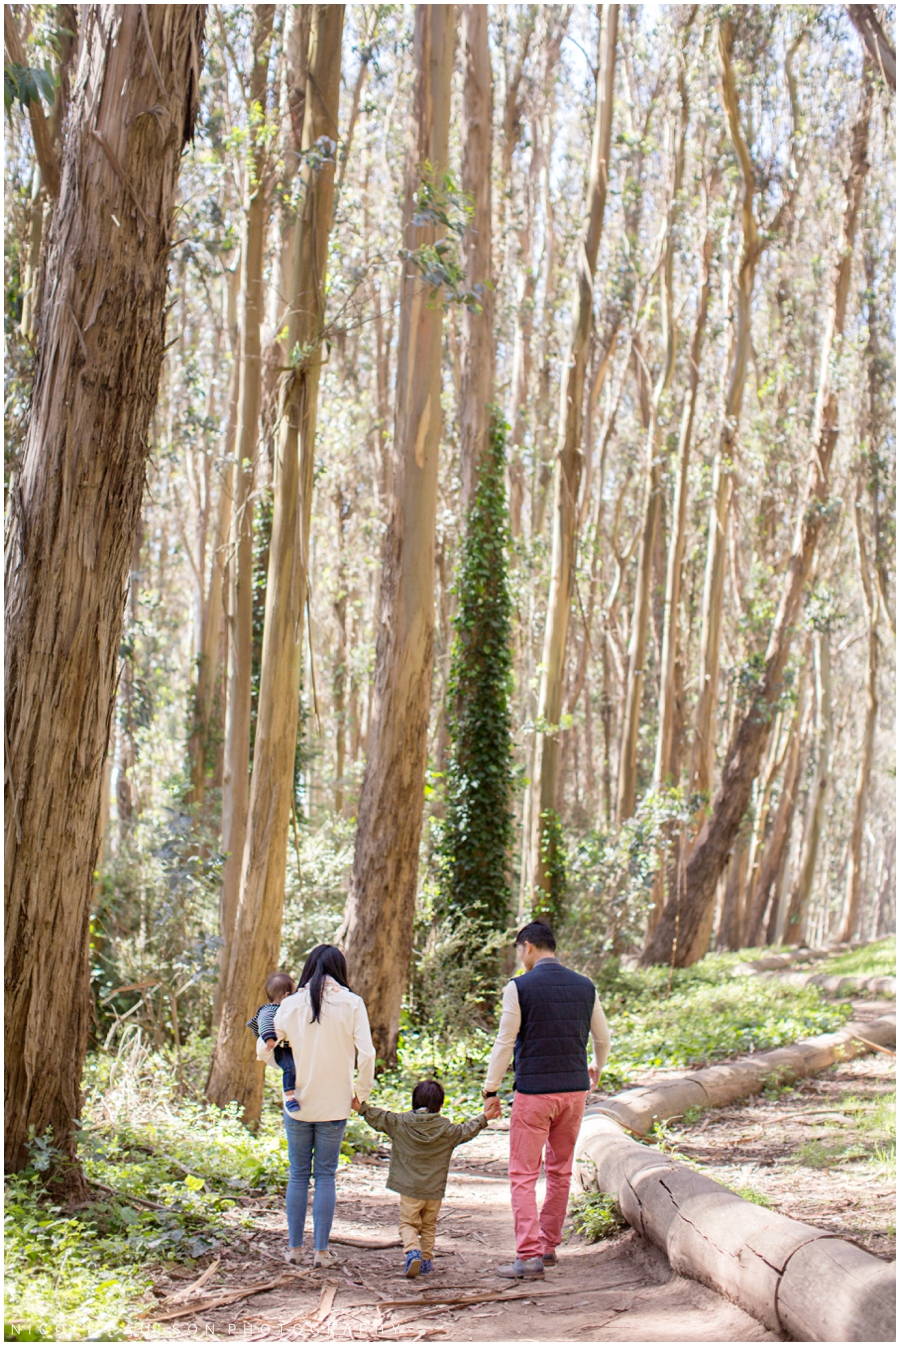 San Francisco Family Photography-Lover's Lane-Presidio-Nicole Paulson Photography_0016.jpg